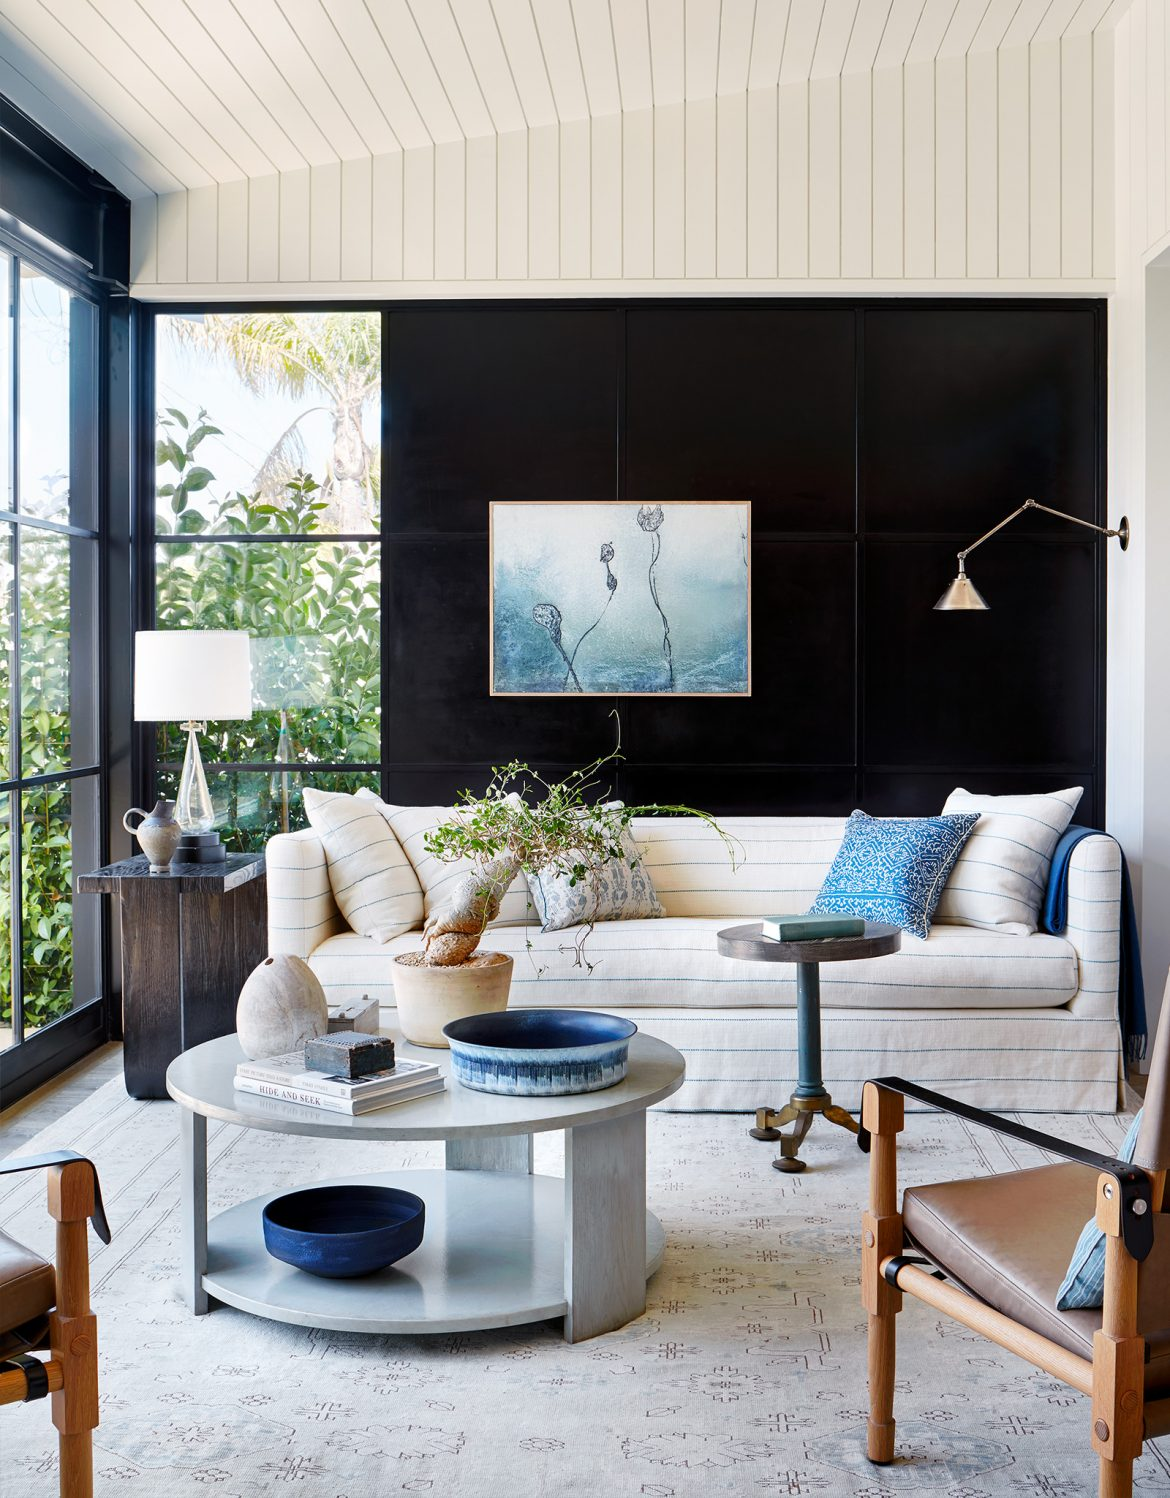 the best interior designers in los angeles The Best Interior Designers In Los Angeles – Part 1 photo3